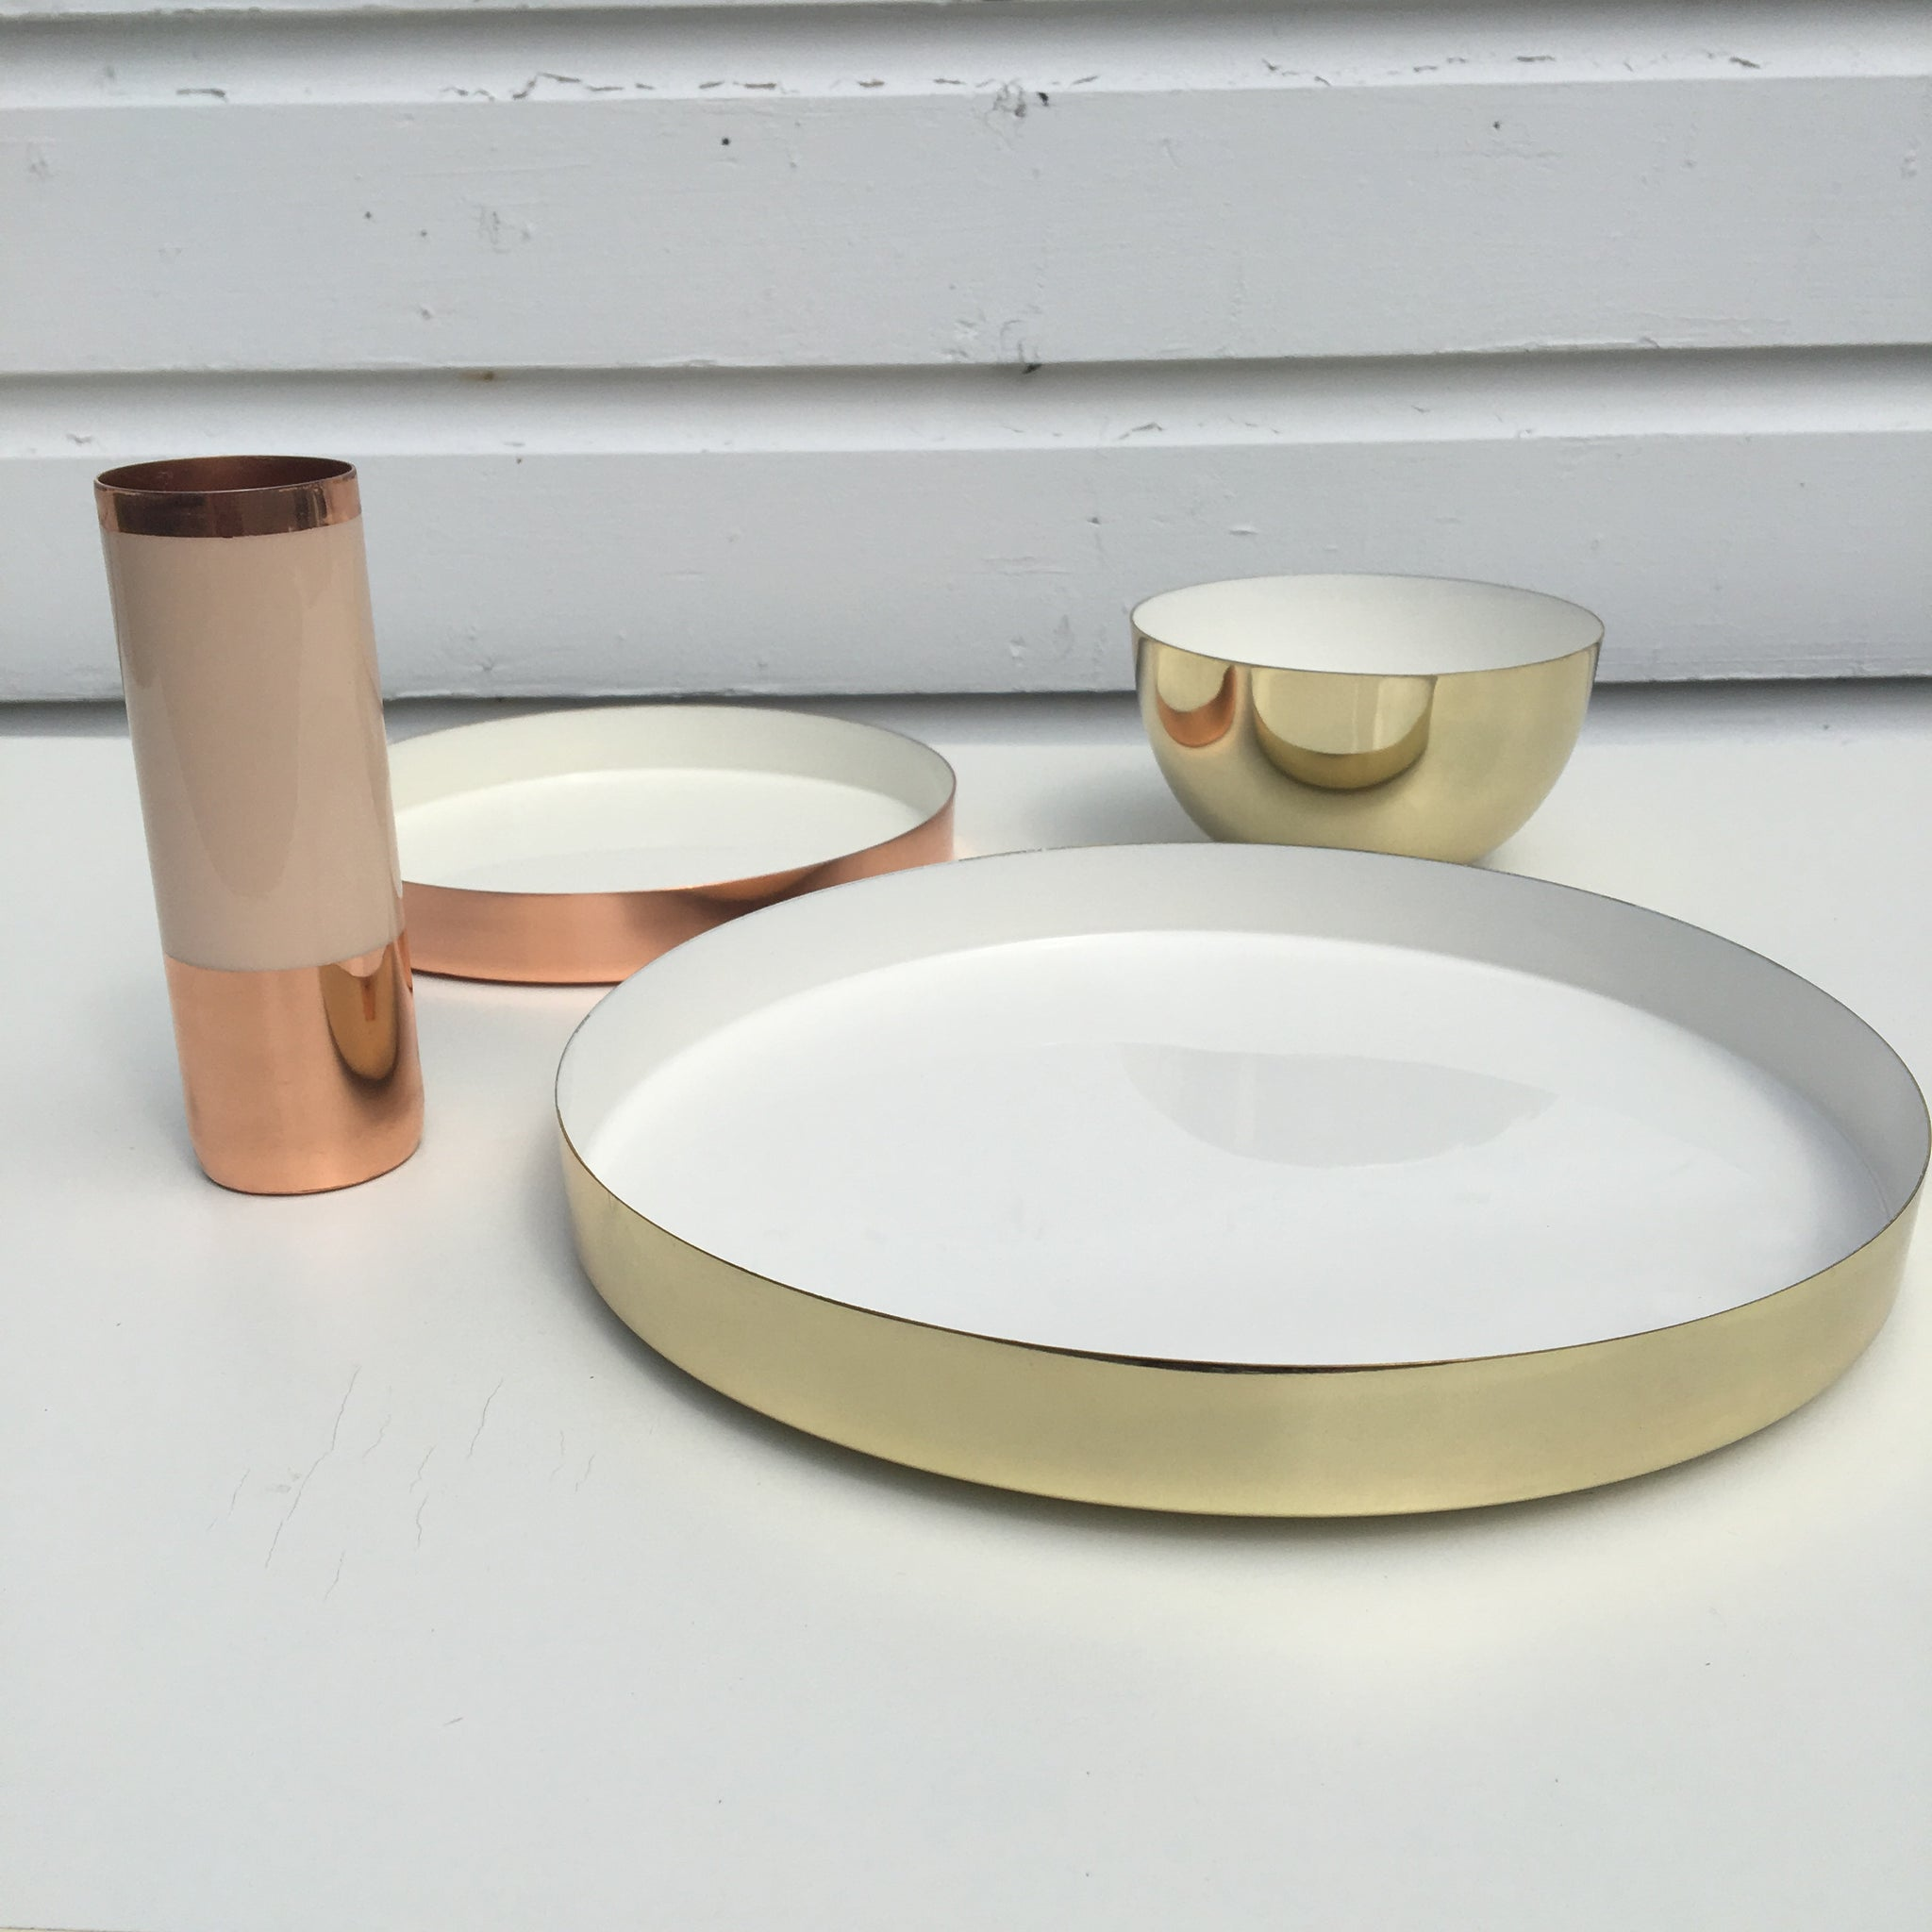 Hawkins Louise color plated vessels